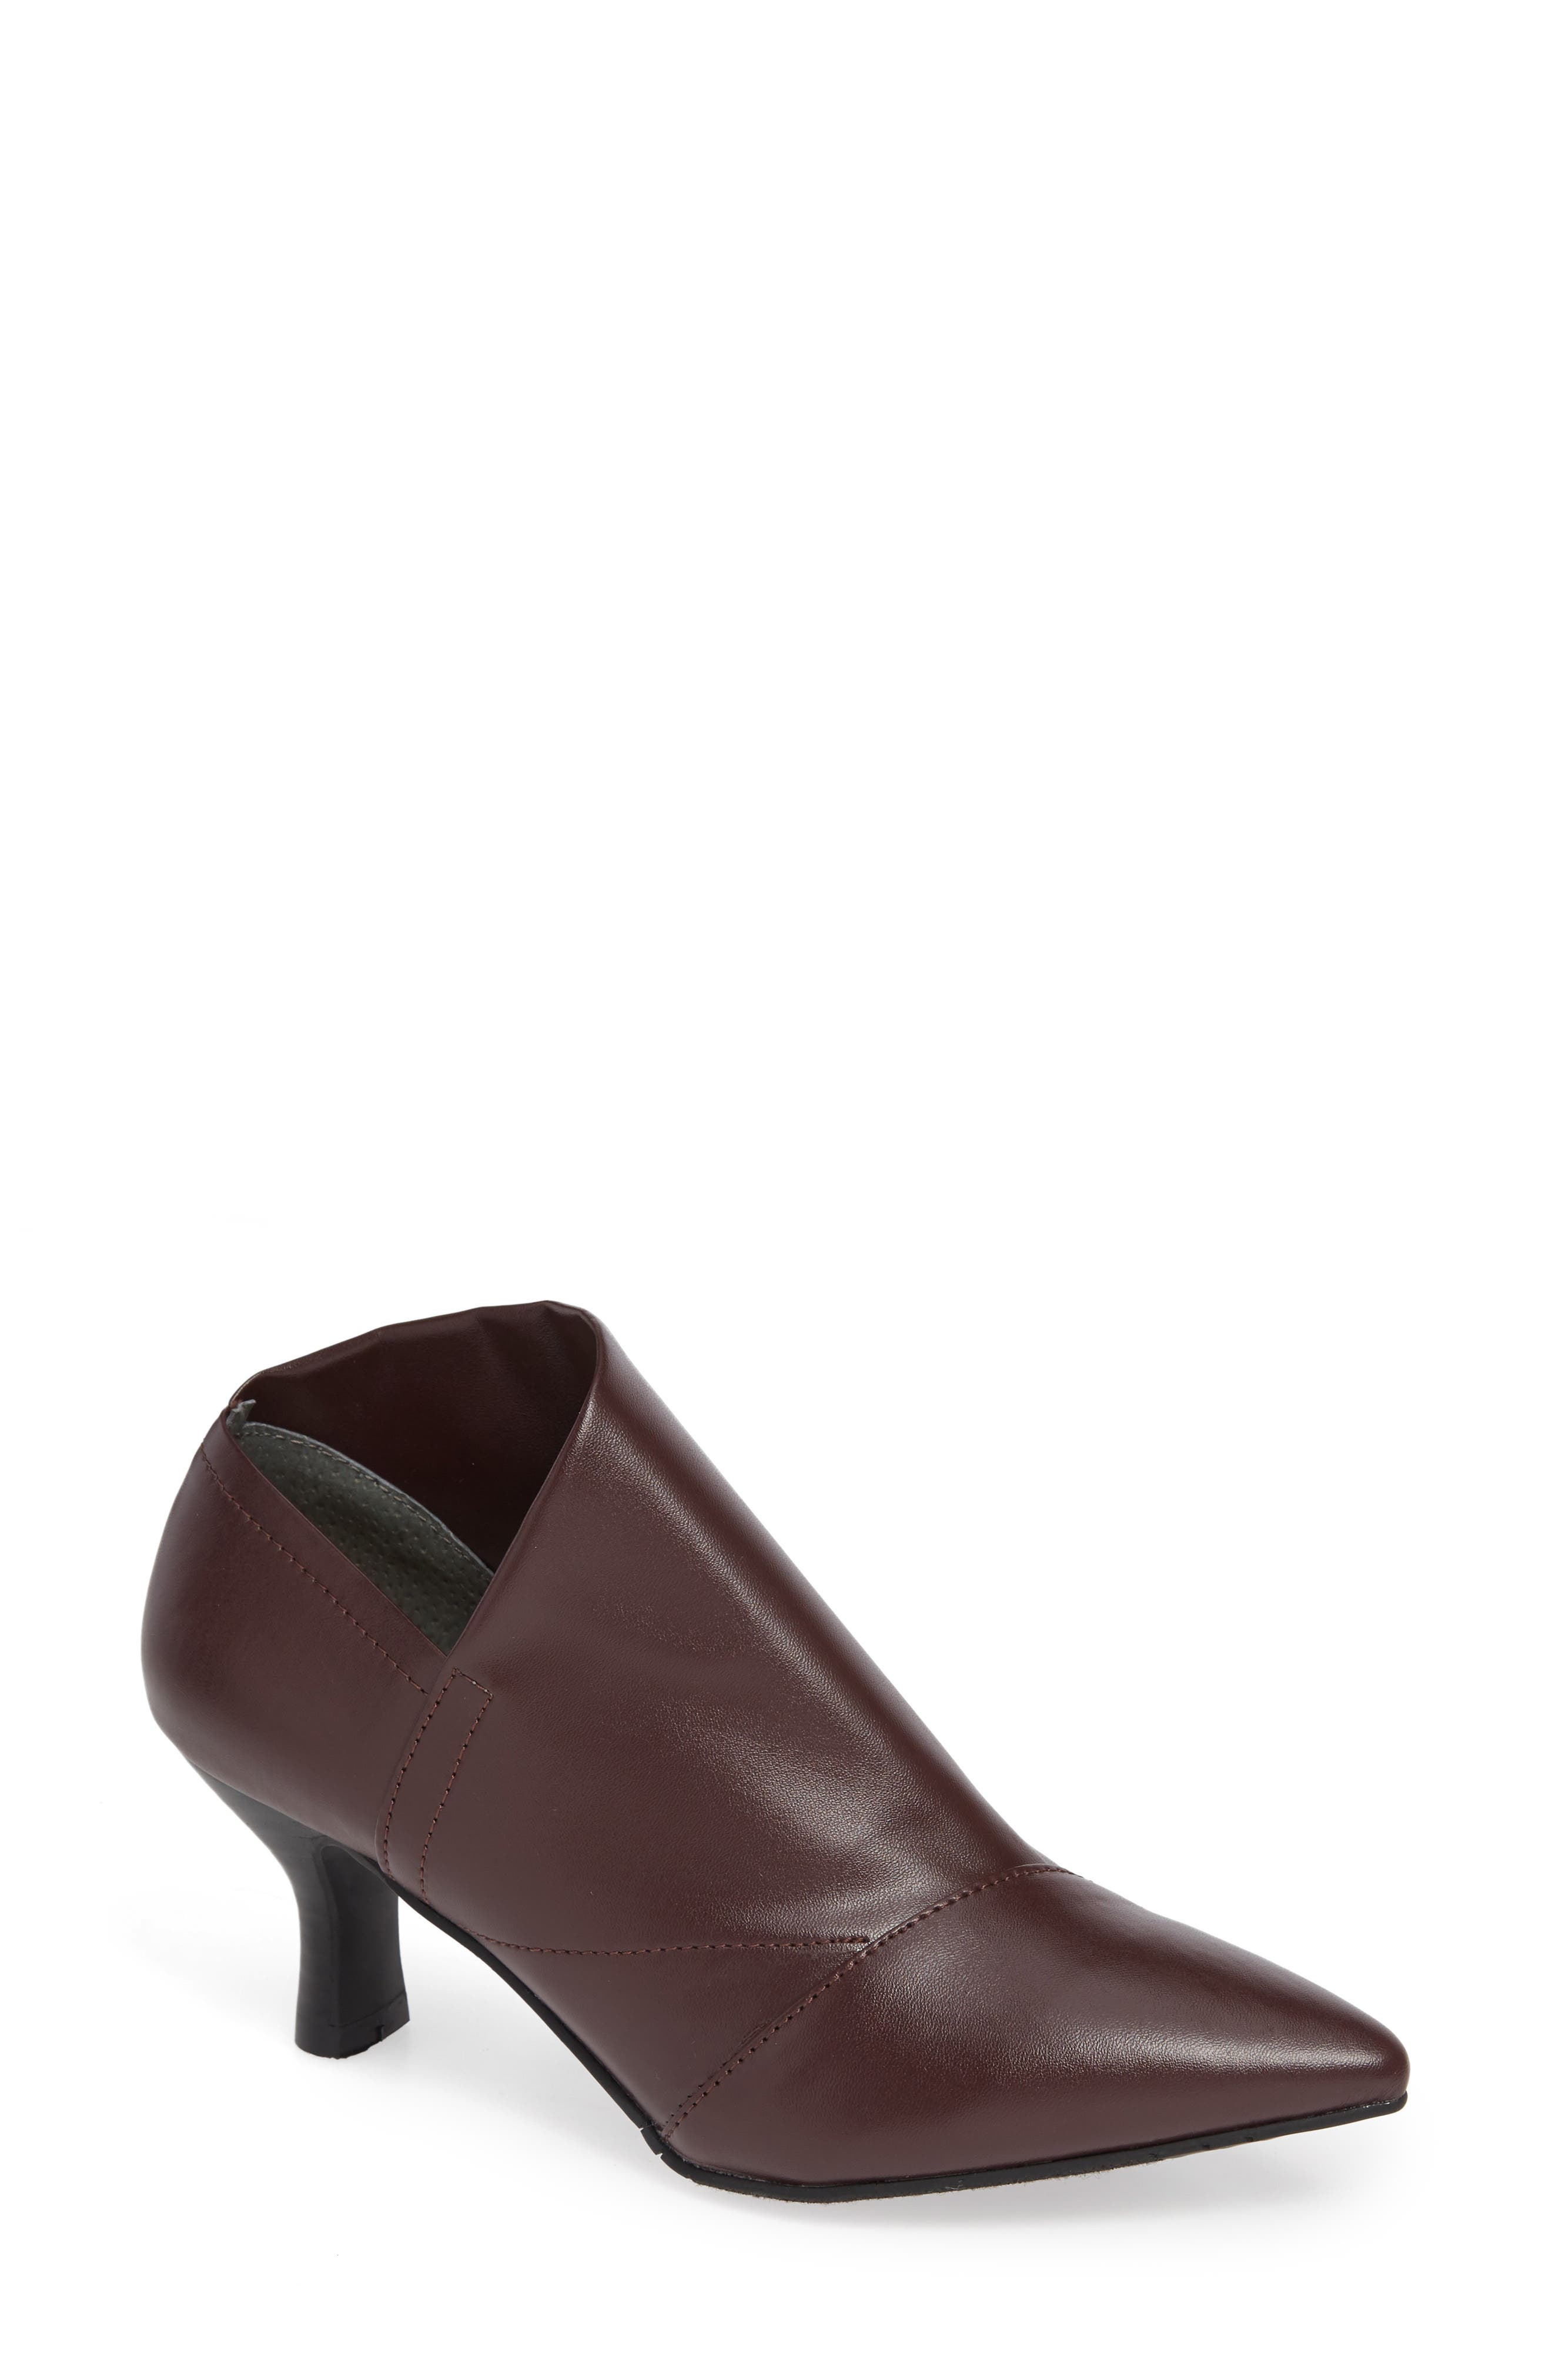 Adrianna Papell Hayes Pointy Toe Bootie- Burgundy